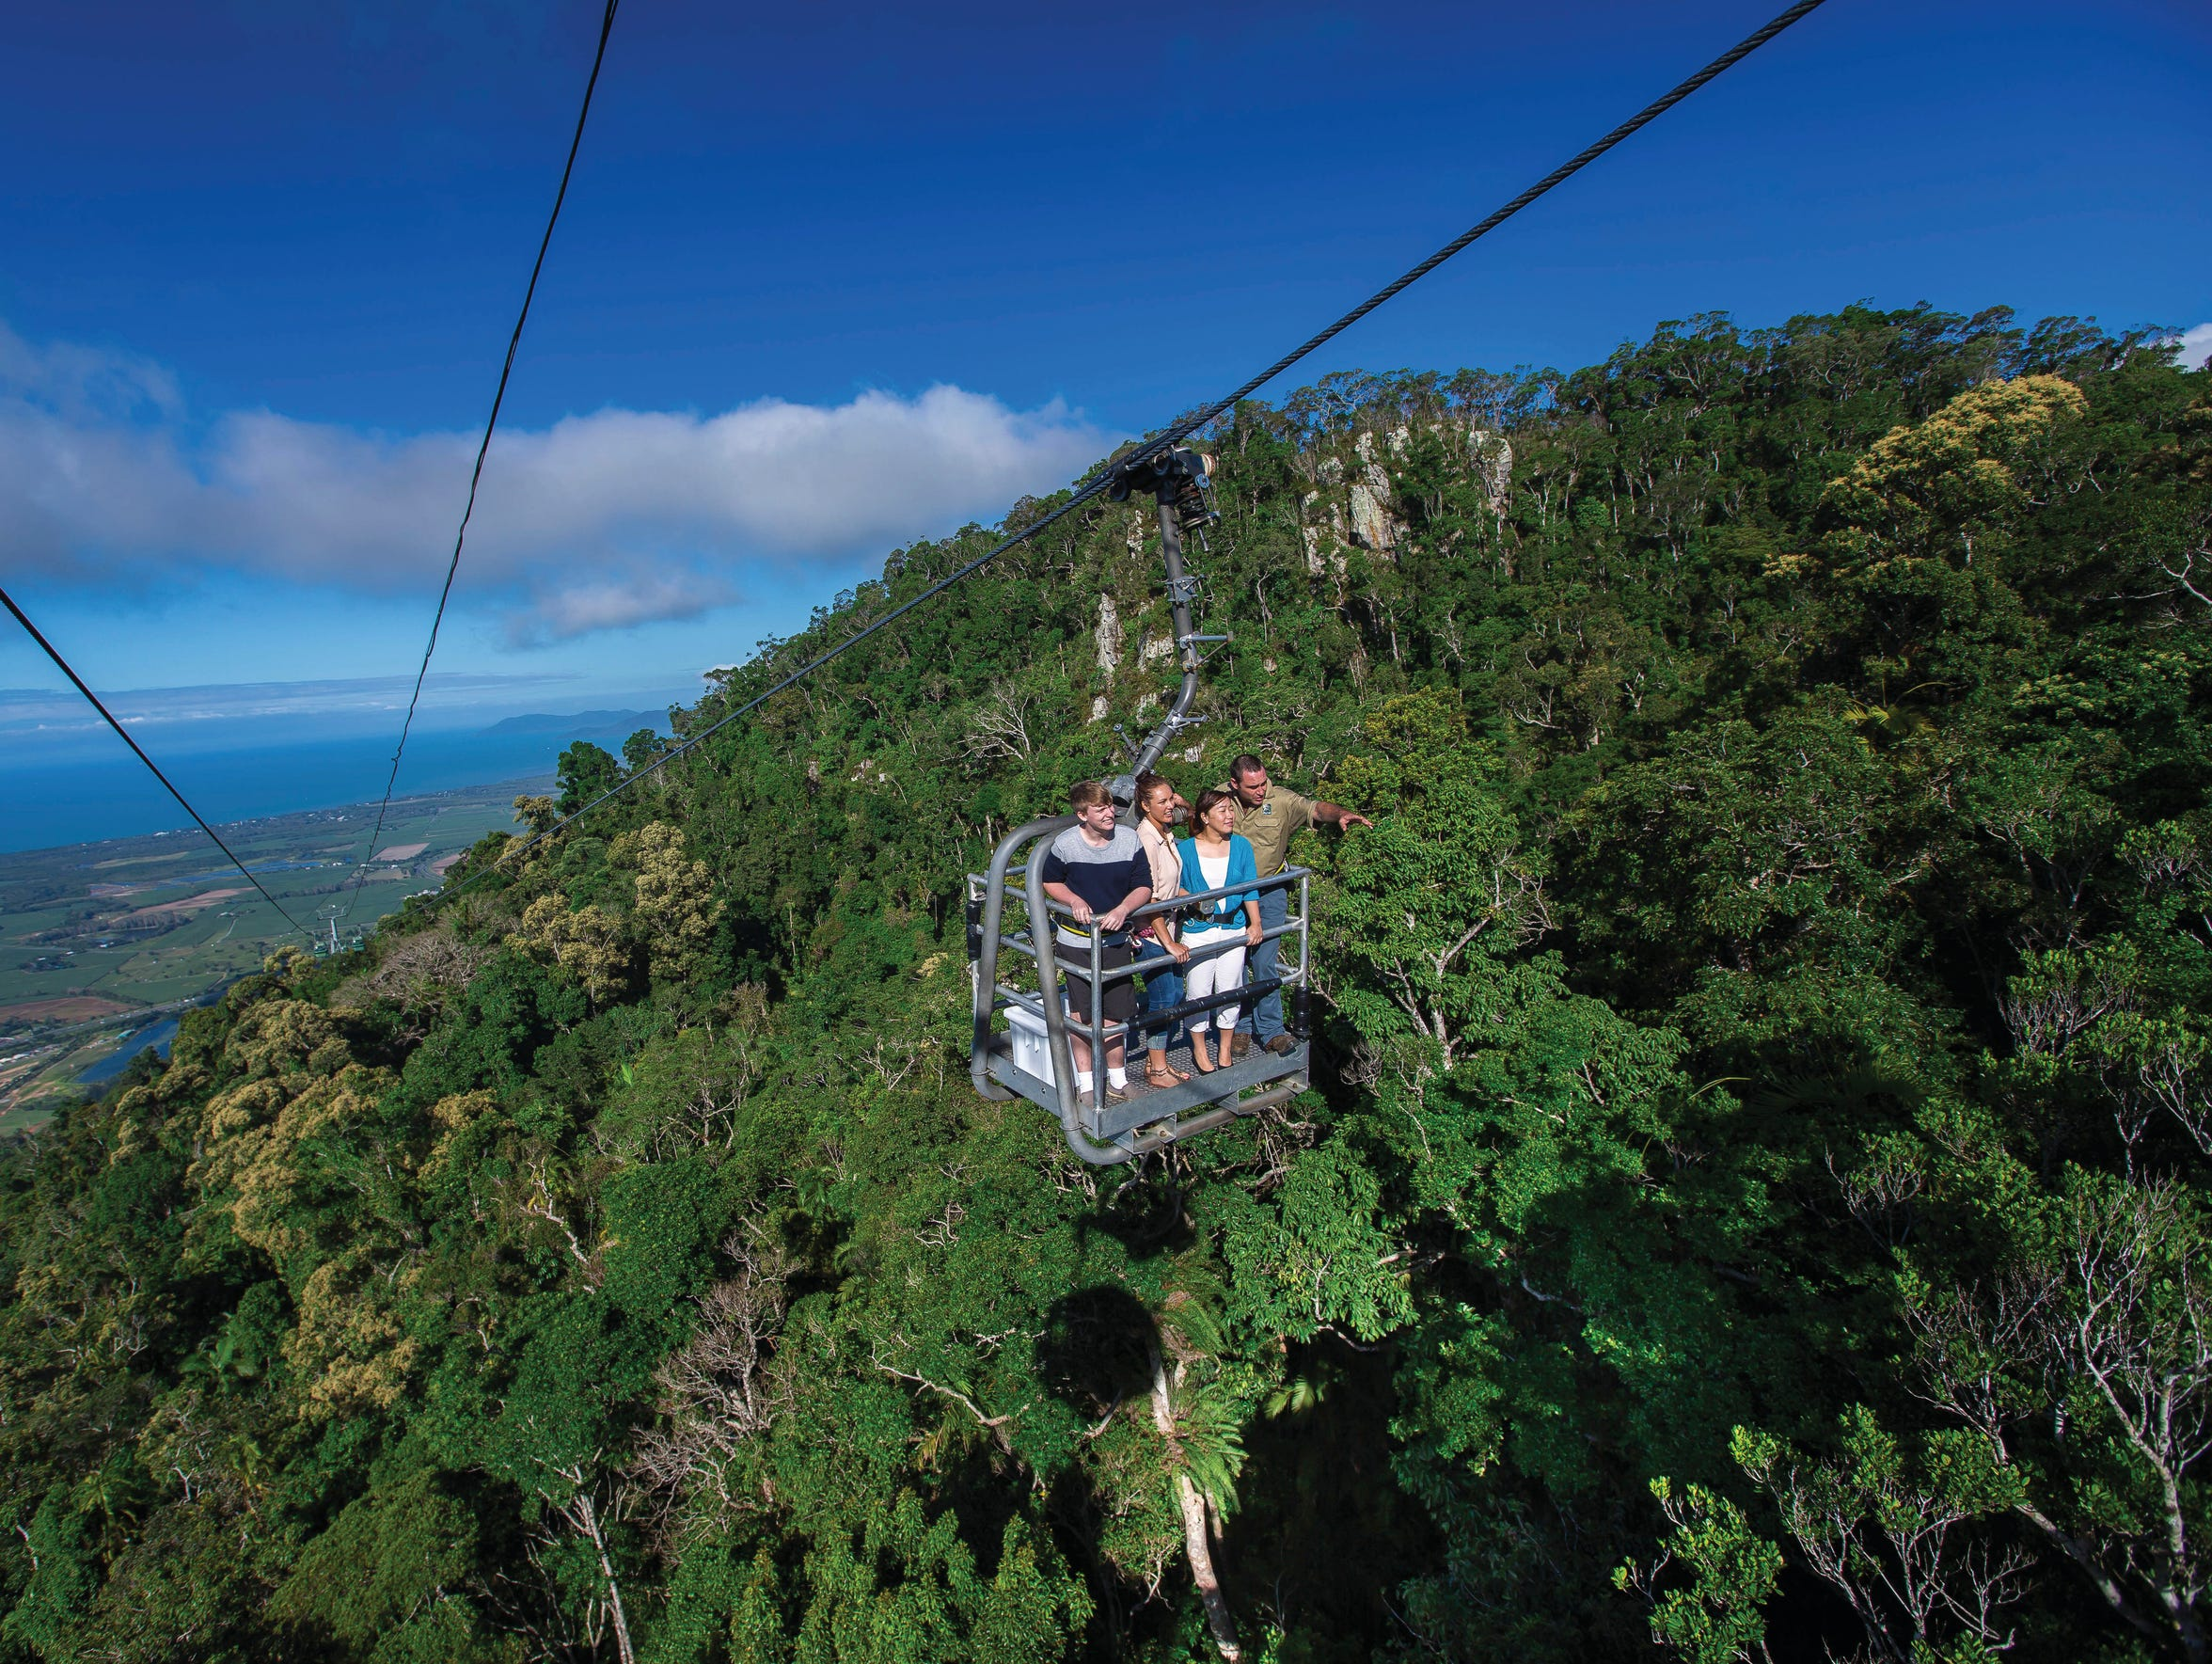 The Skyrail cableway glides over the rainforest to